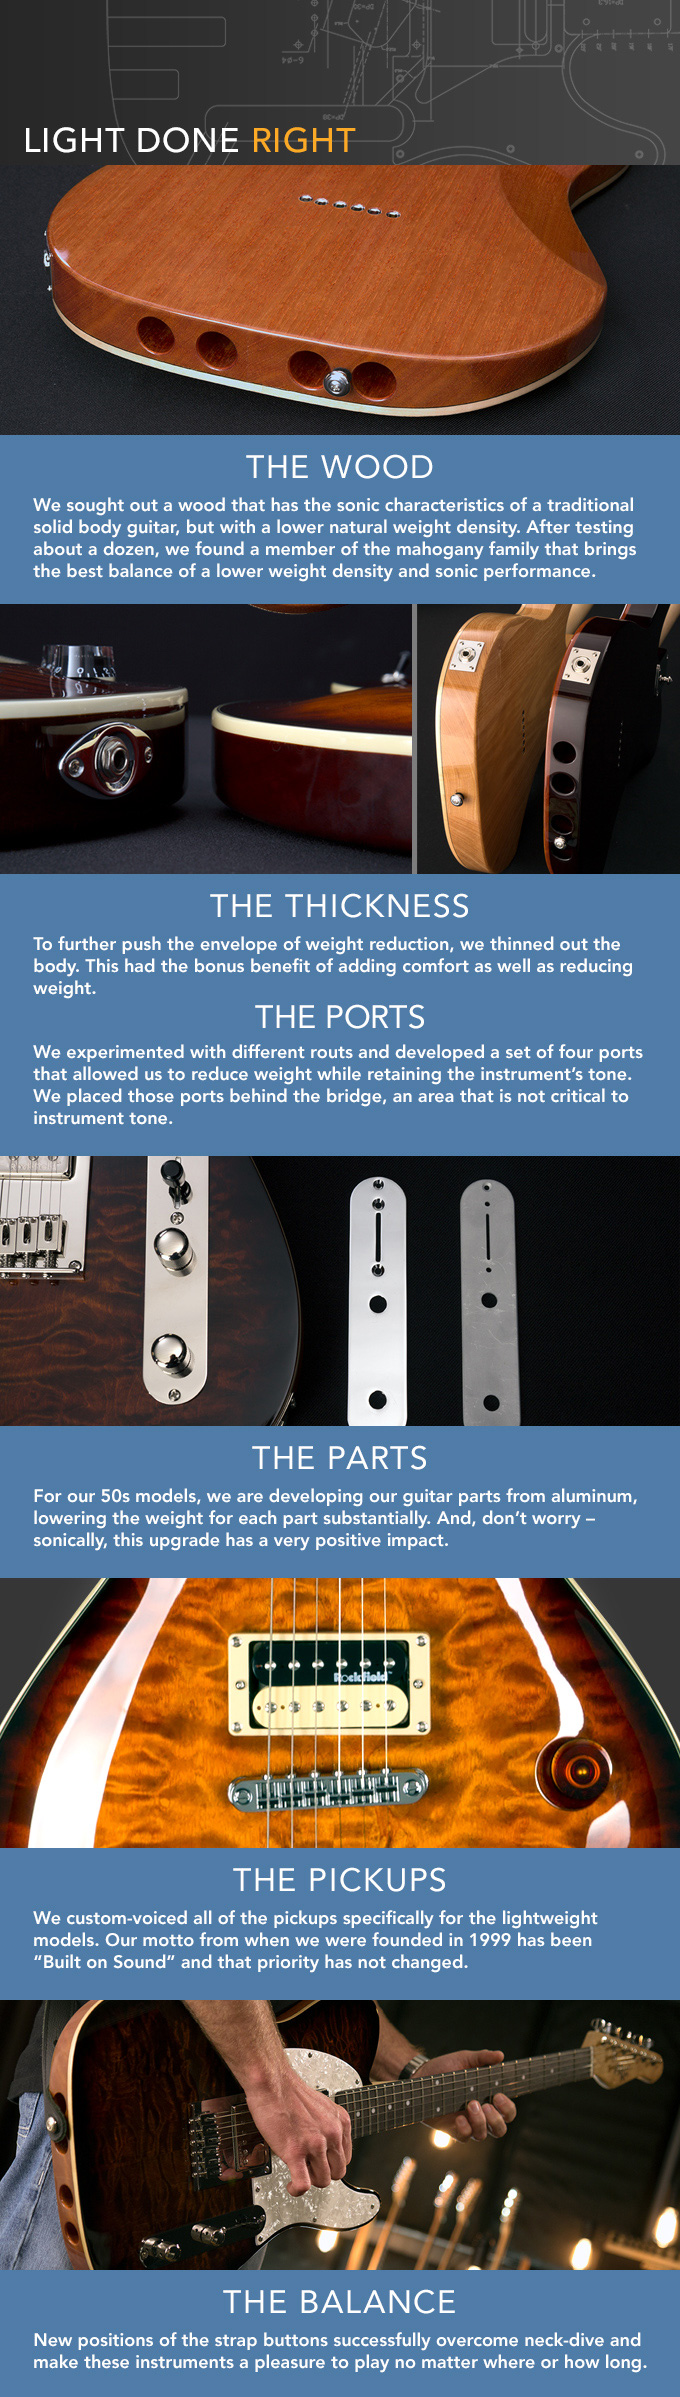 Description of new ultralight enlightened guitars